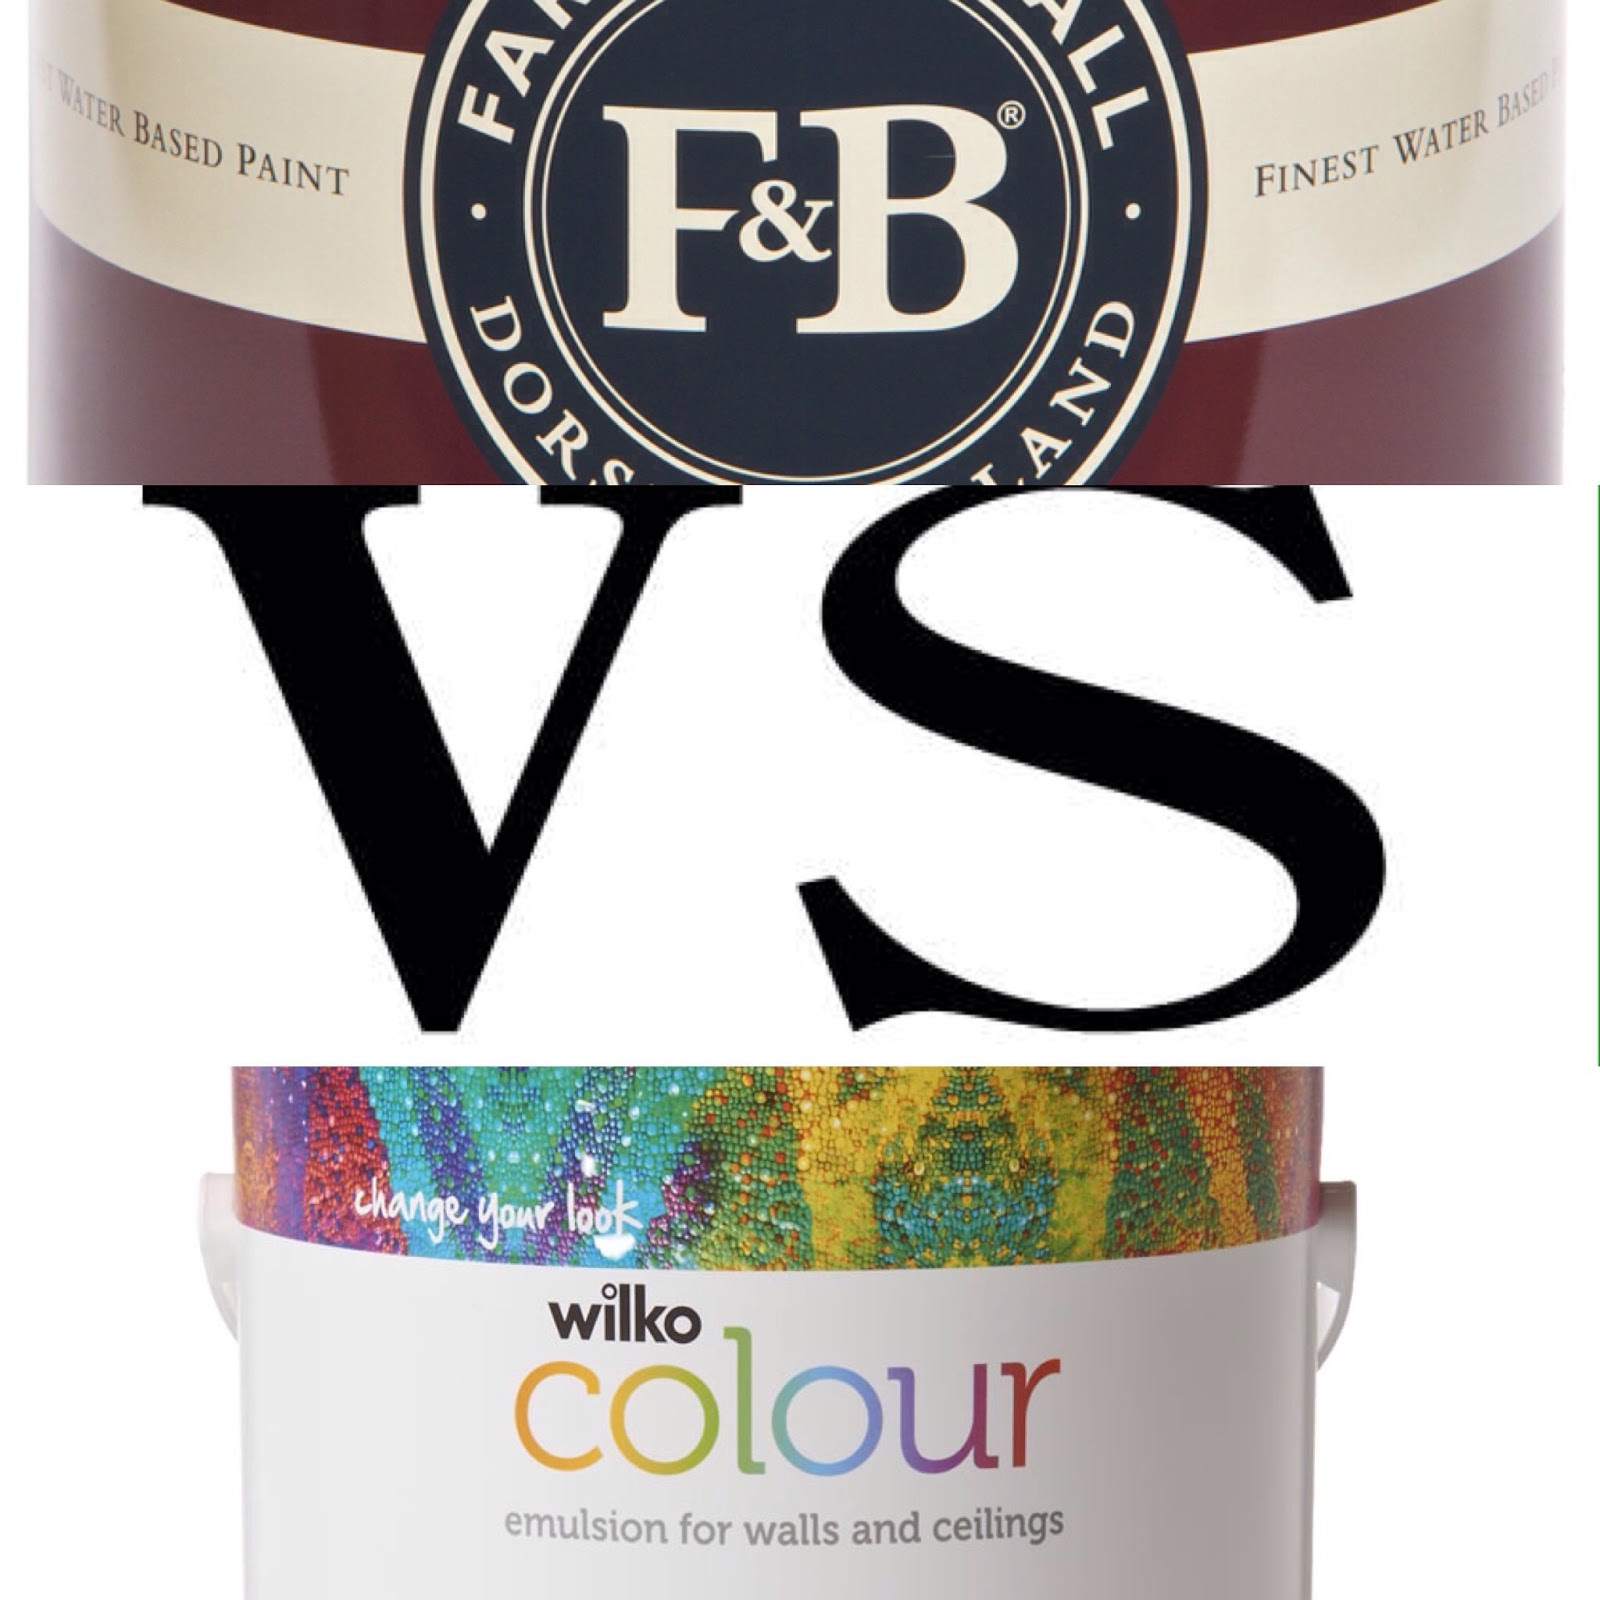 Firstly Paint I Do Agree That The More Expensive Brands Have A Better Coverage Texture Use Farrow Ball Regularly One Of Most